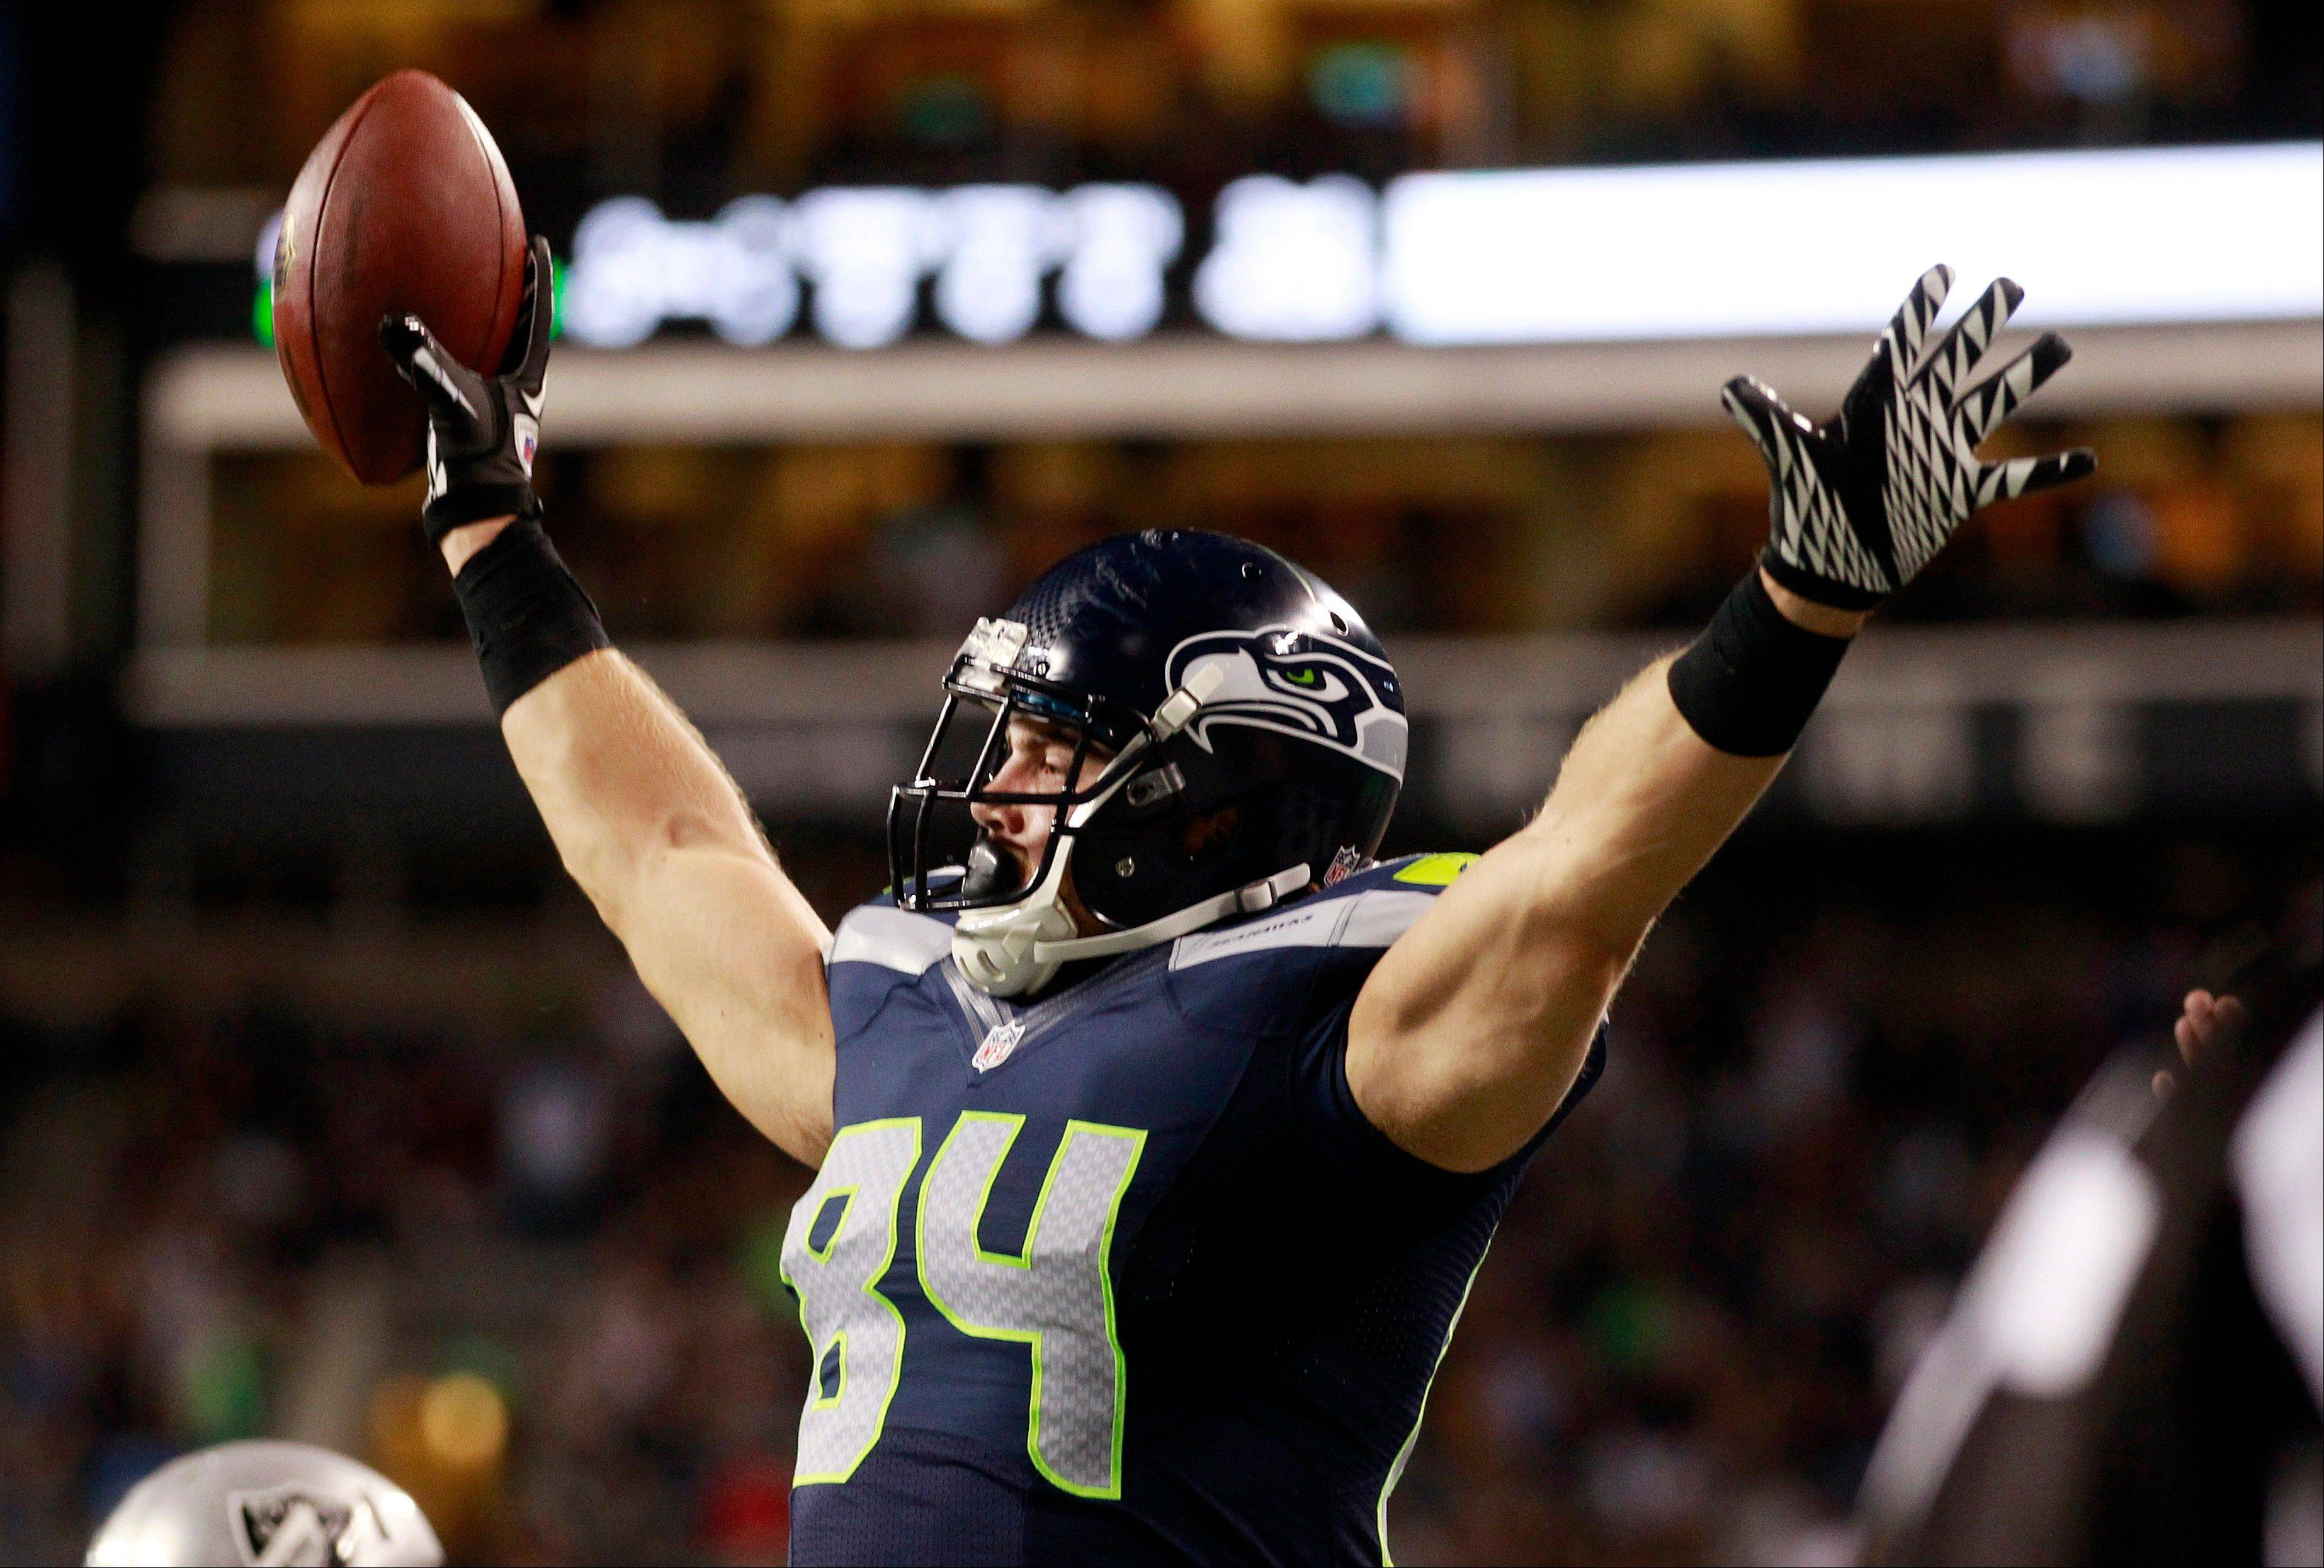 The Seahawks' Cooper Helfet celebrates after scoring a touchdown against the Oakland Raiders in the second half of a preseason game Thursday in Seattle.